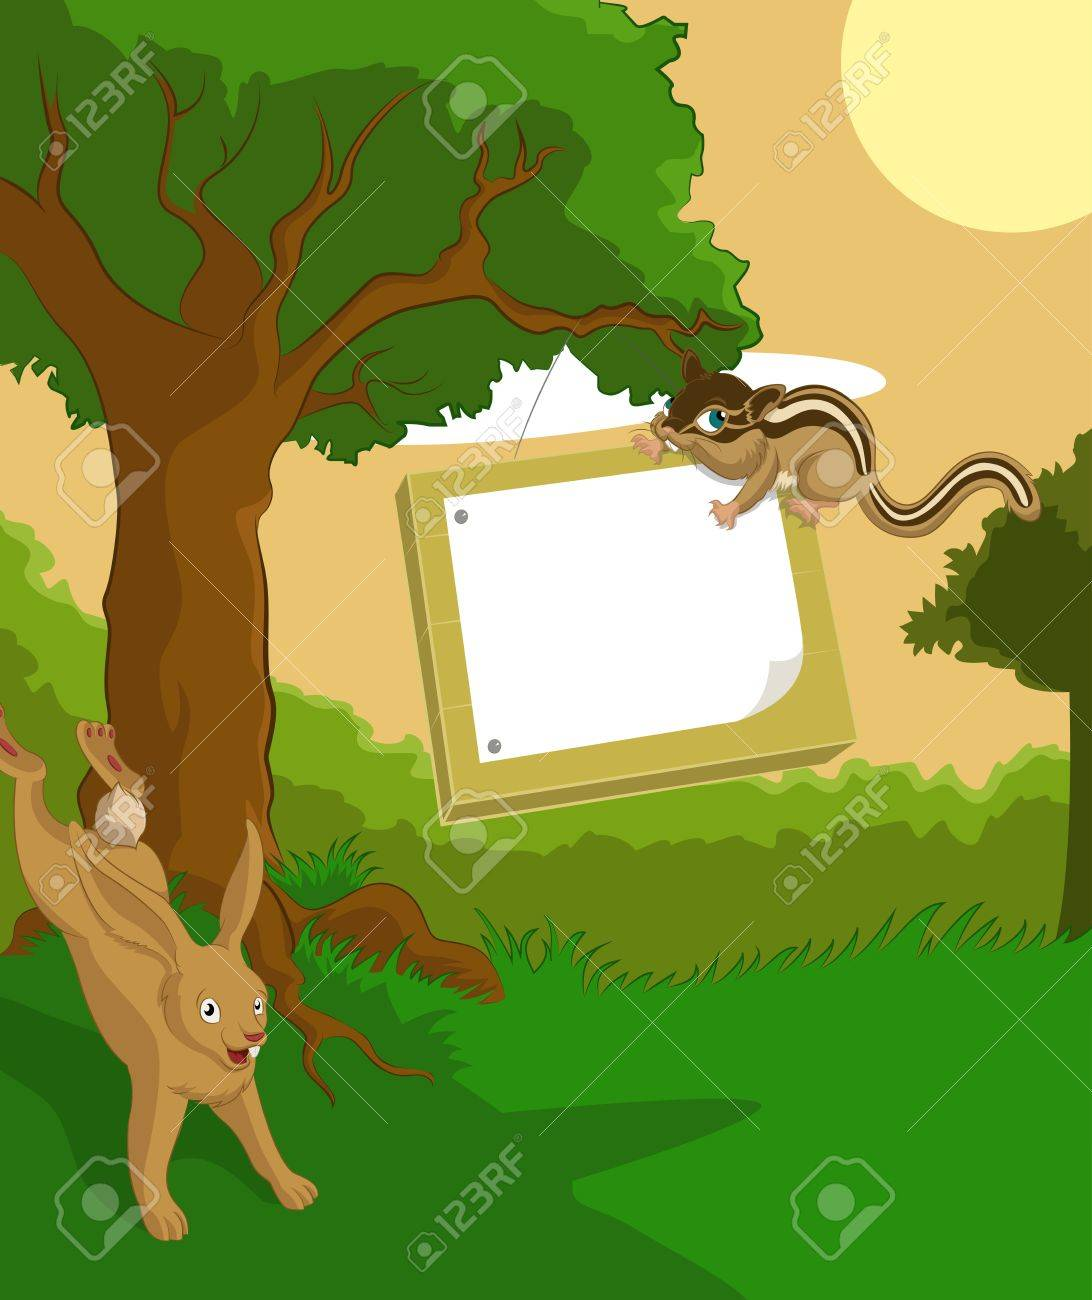 Vector image of wood background with plate and hare and chipmunk Stock Vector - 17976921